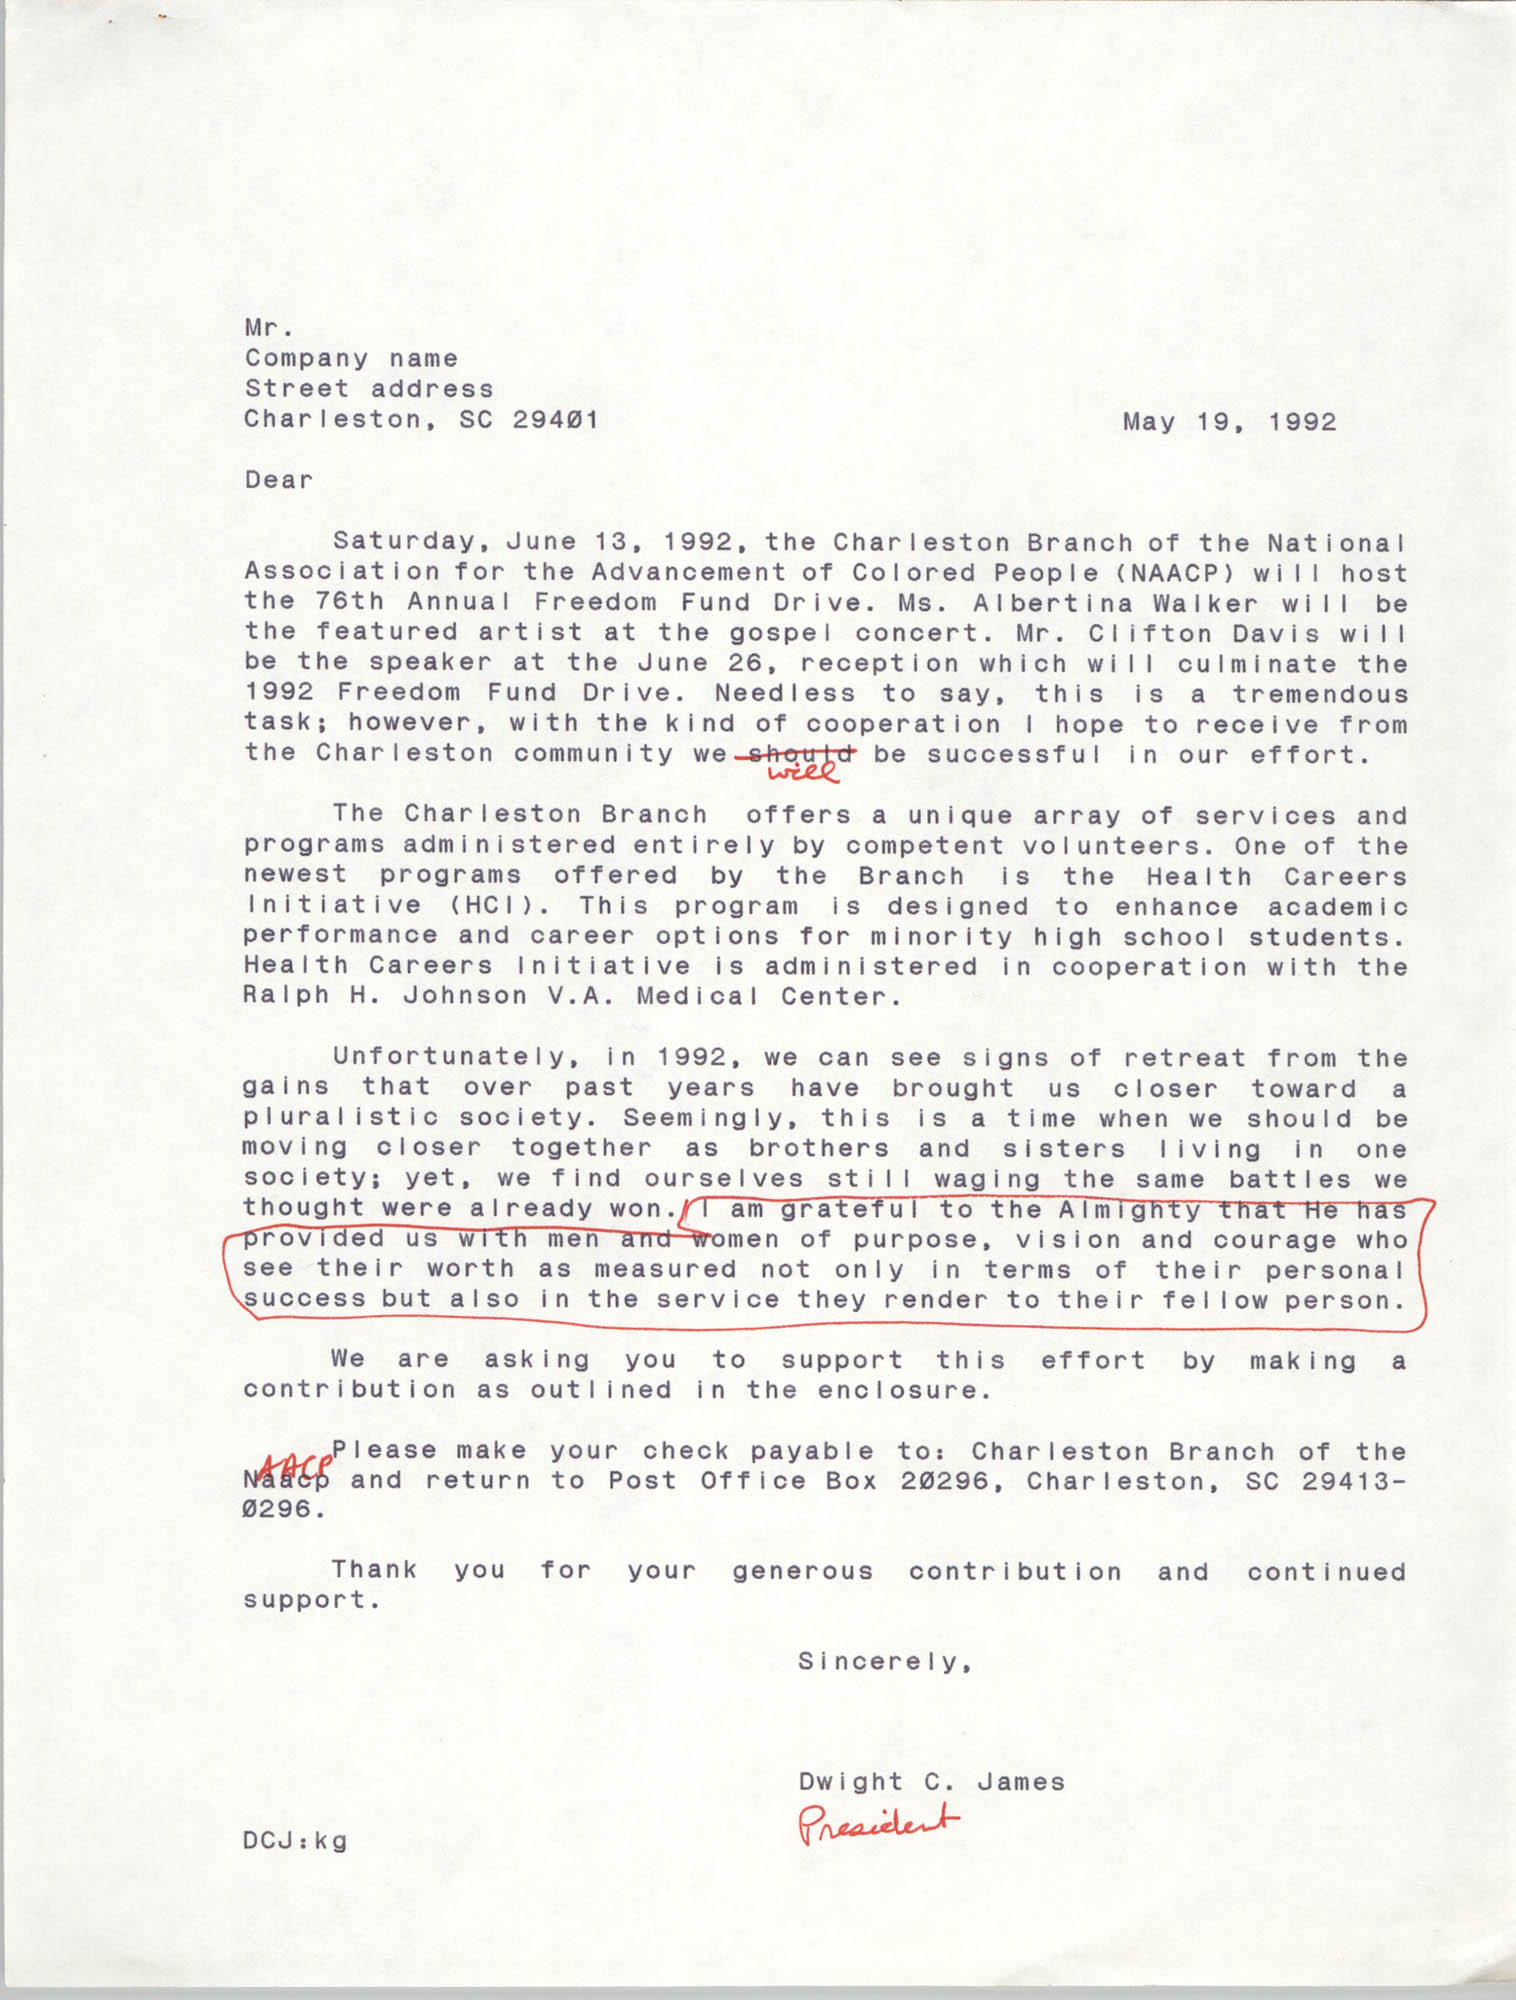 Draft, Contribution Letter, Dwight C. James, May 19, 1992